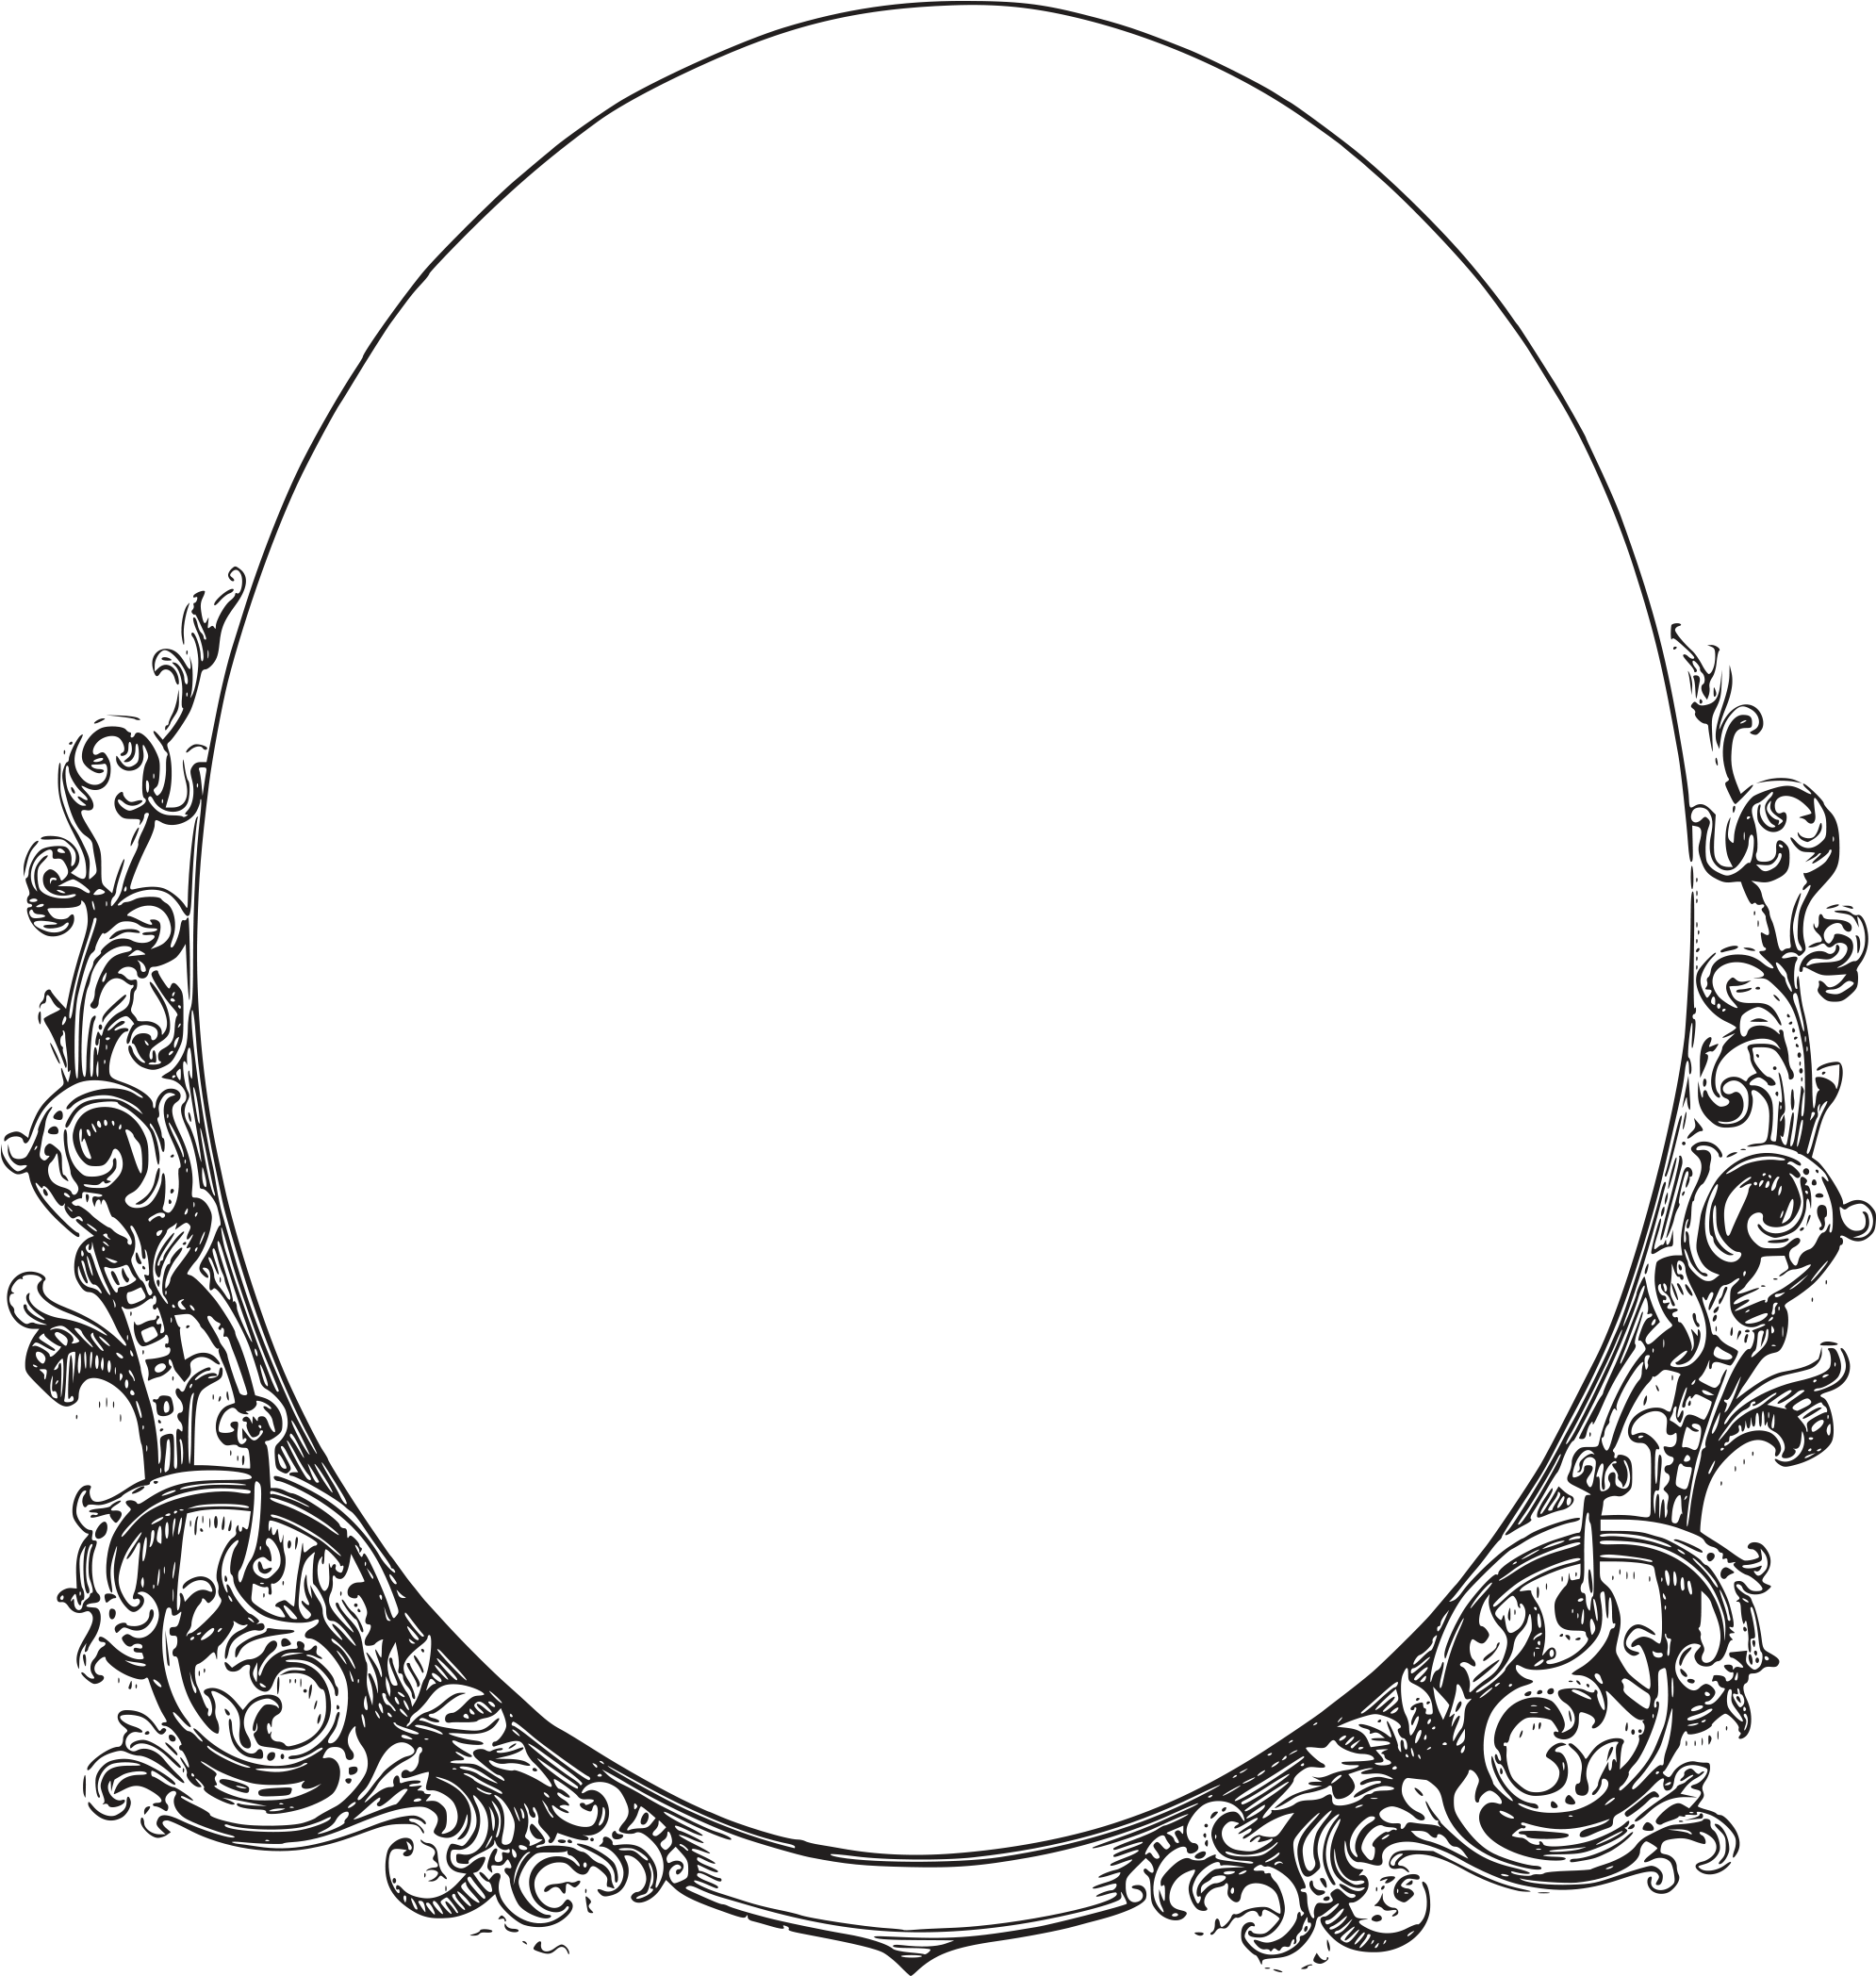 Stock Vector - Oval Frame Vector Png Clipart - Full Size ...